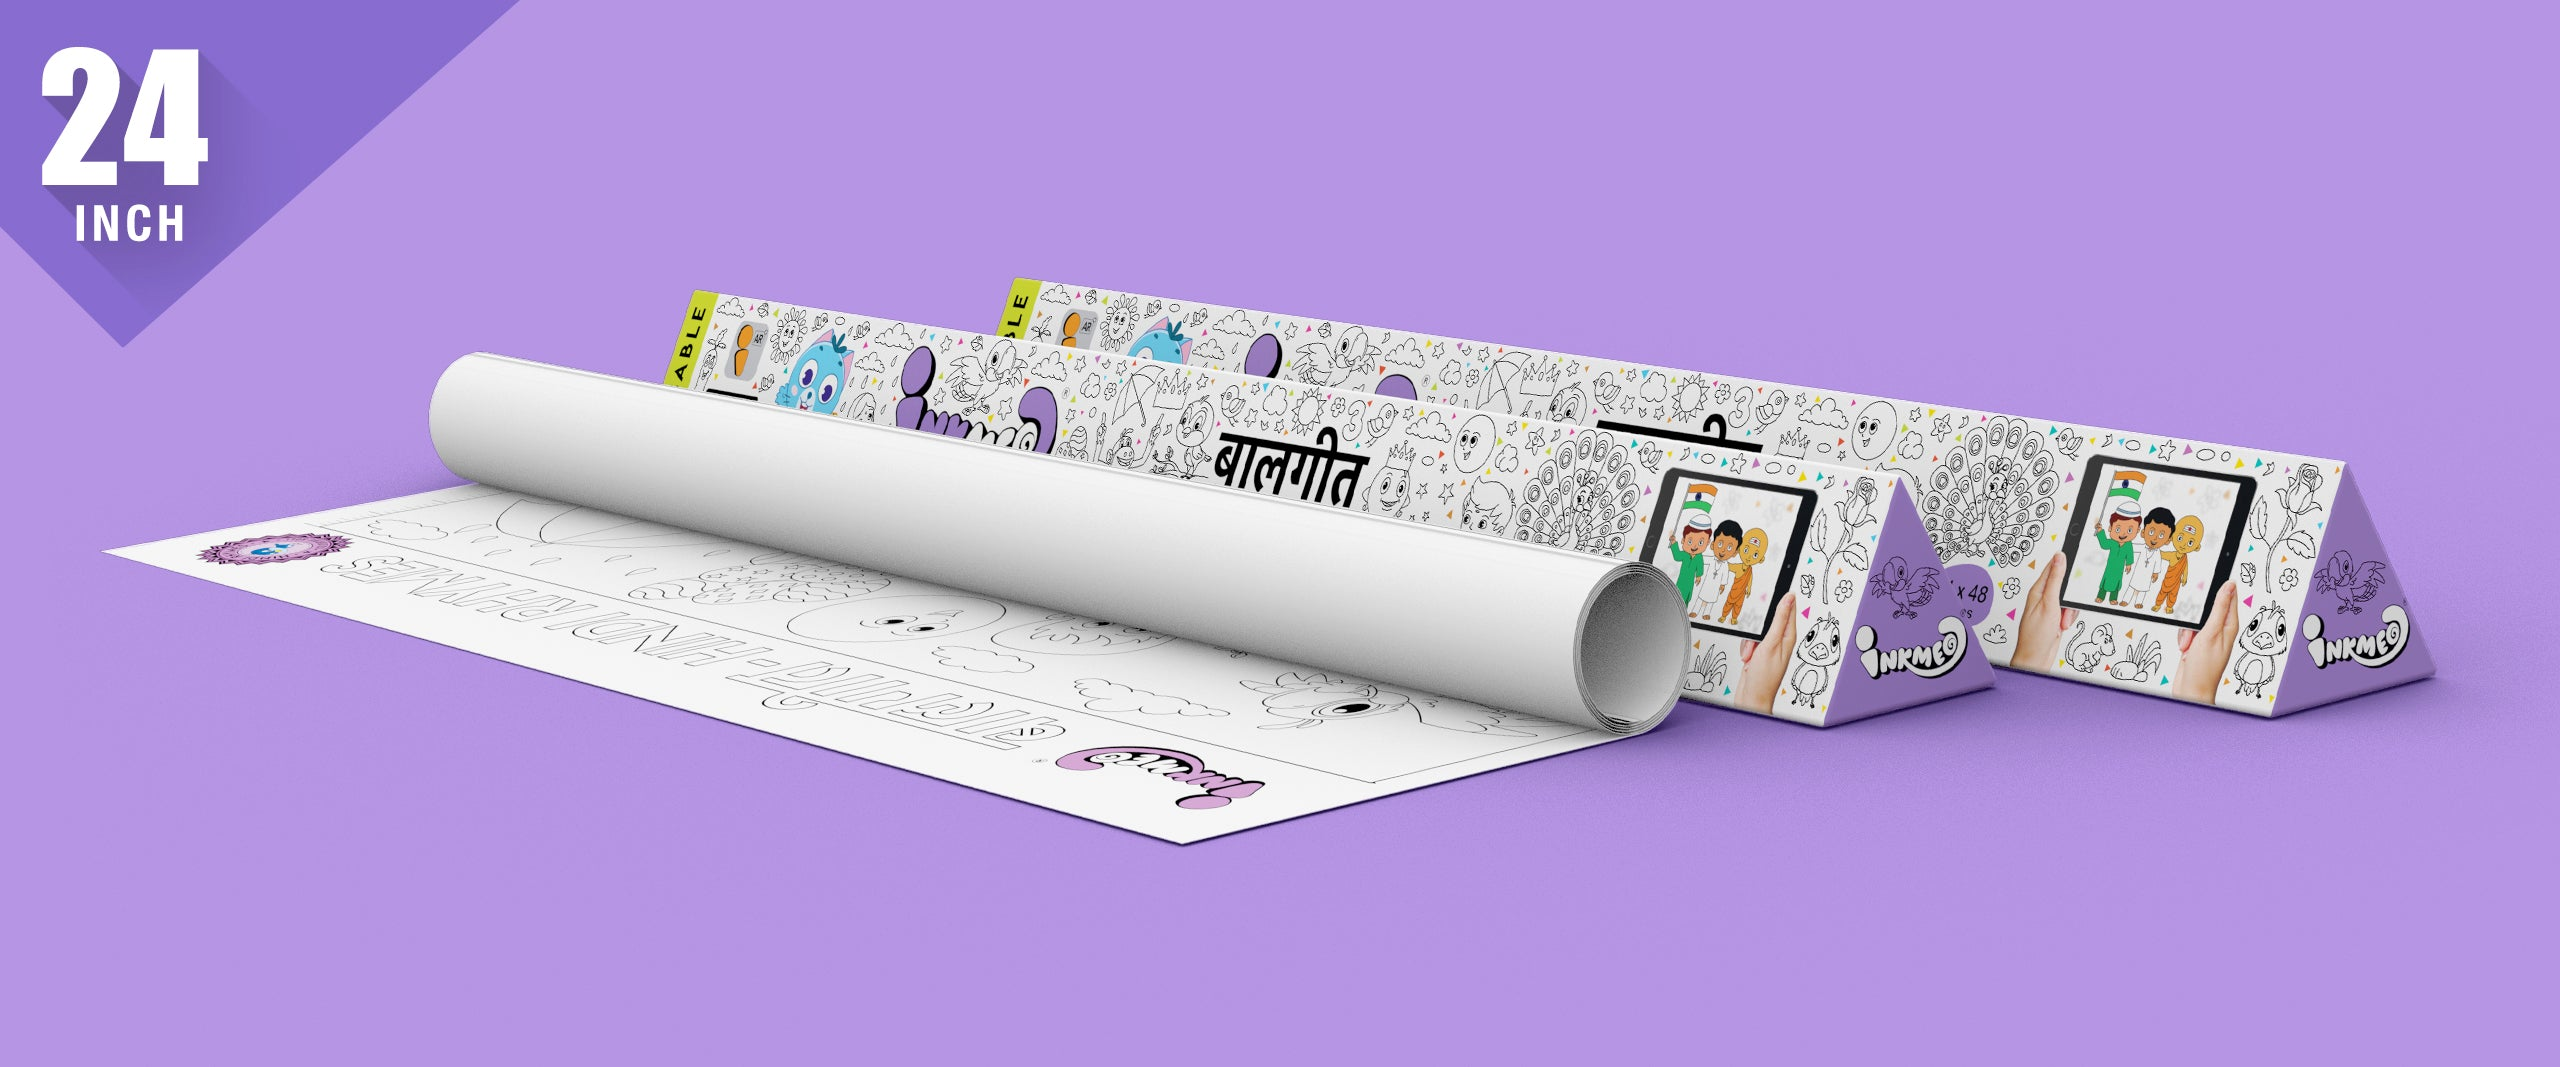 Hindi Rhymes Colouring Roll ( 24 inch) - Inkmeo